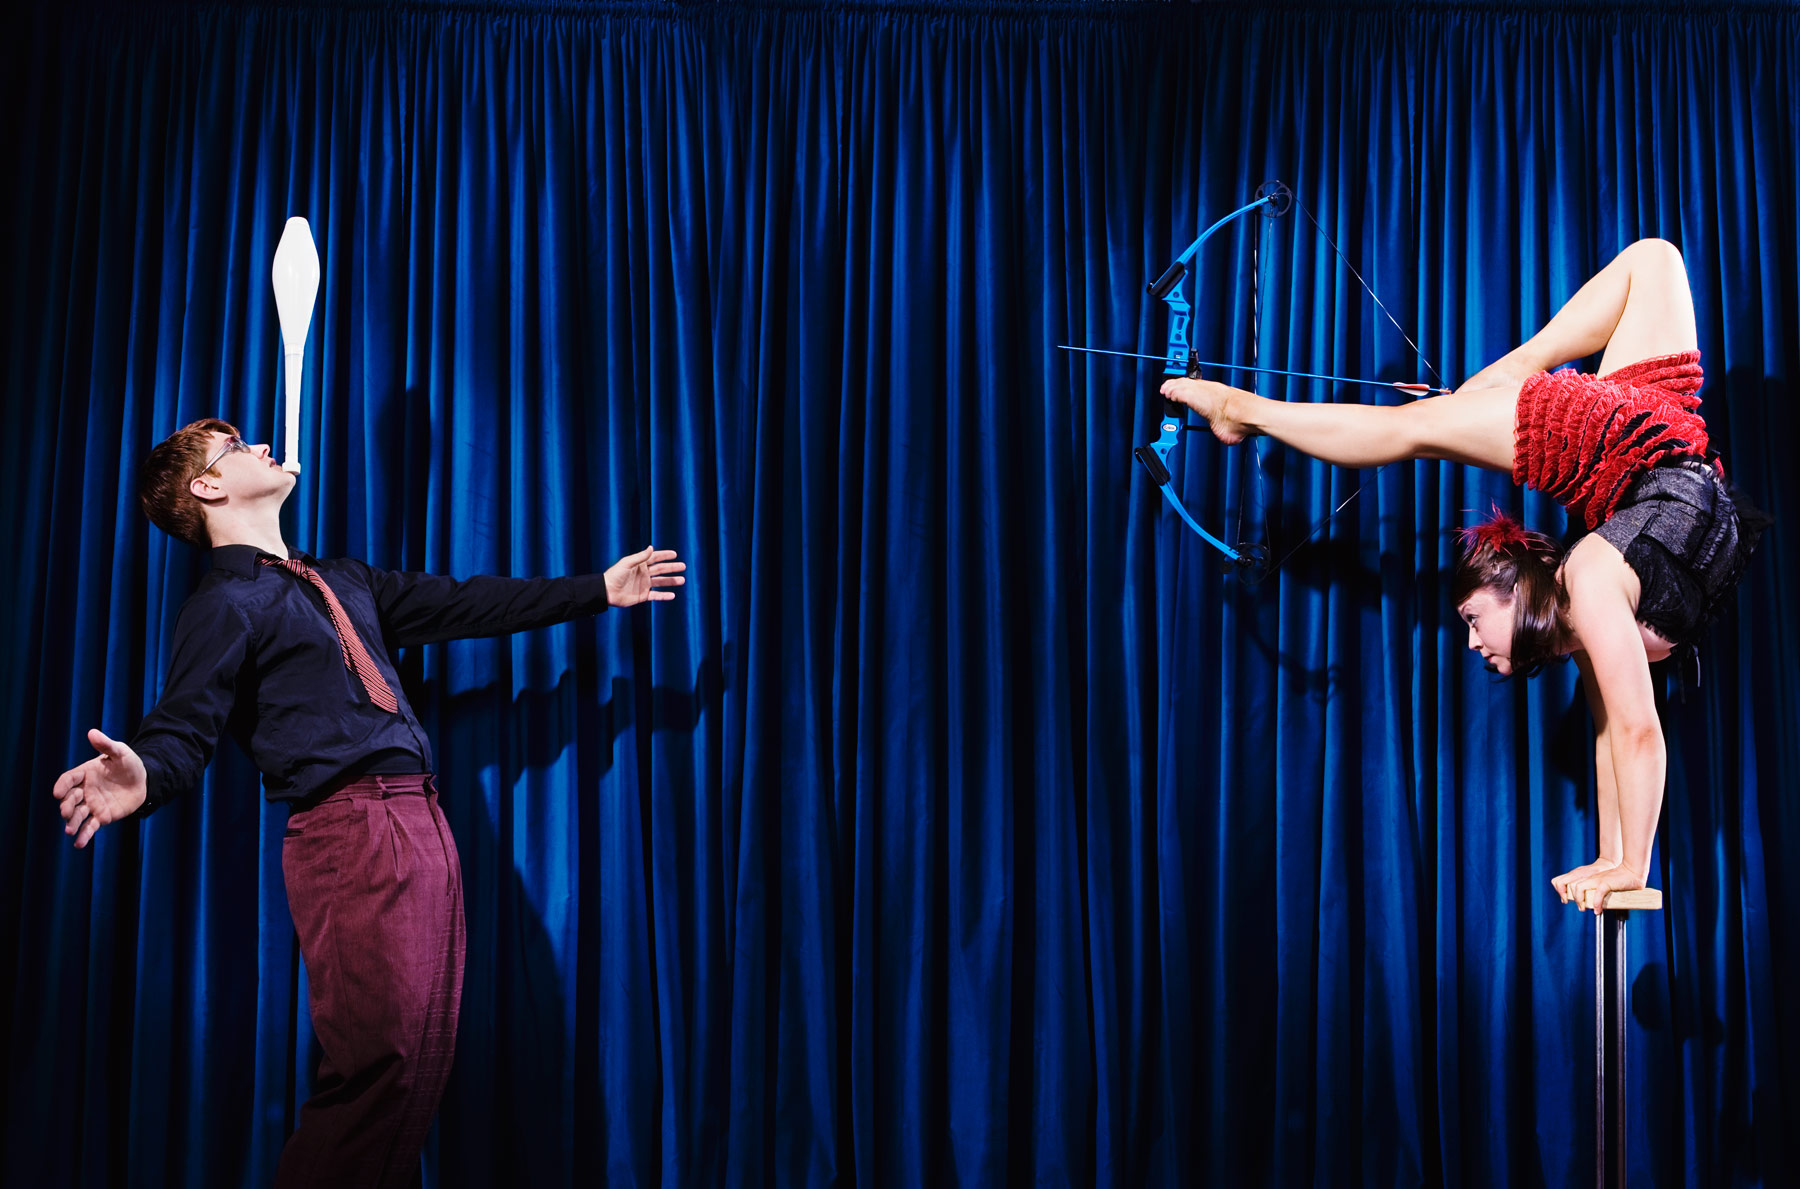 Portrait of circus performers doing a trick with the man balancing a pinball on his chin and the woman holding a bow and arrow with her feet while balancing on her hands